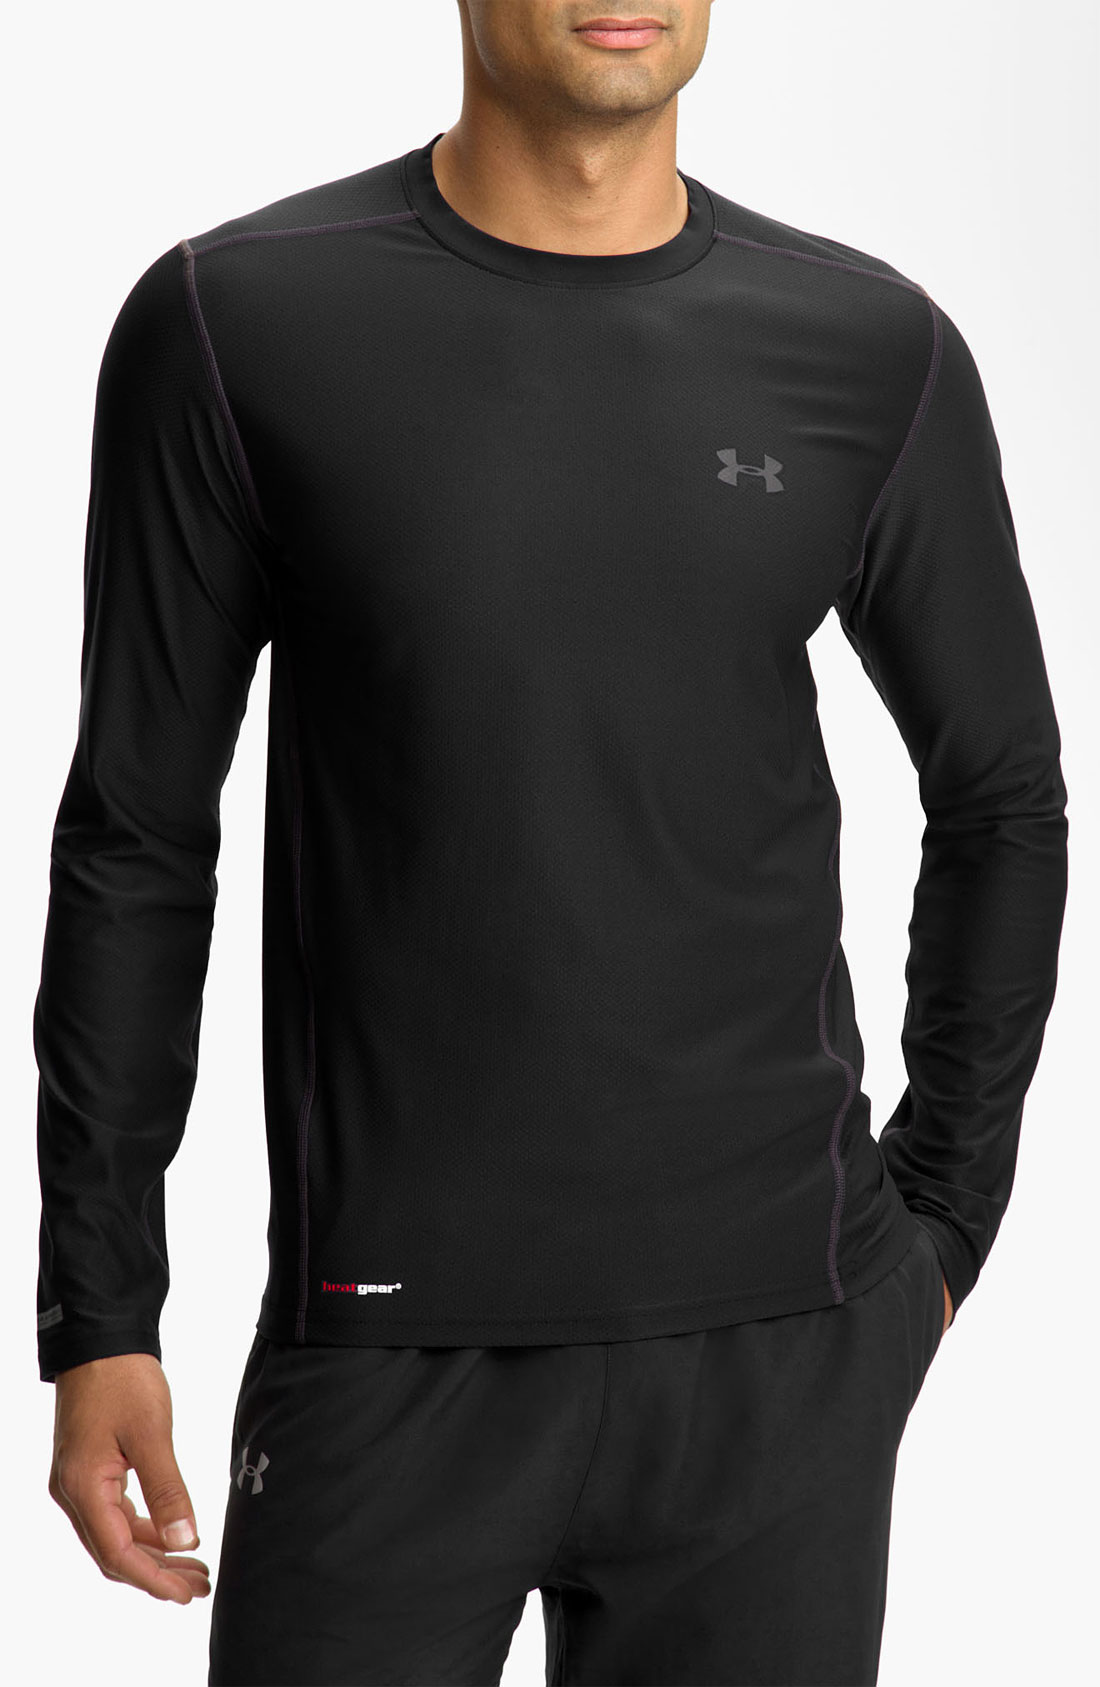 Under armour heatgear fitted long sleeve tshirt in black for Black fitted long sleeve t shirts